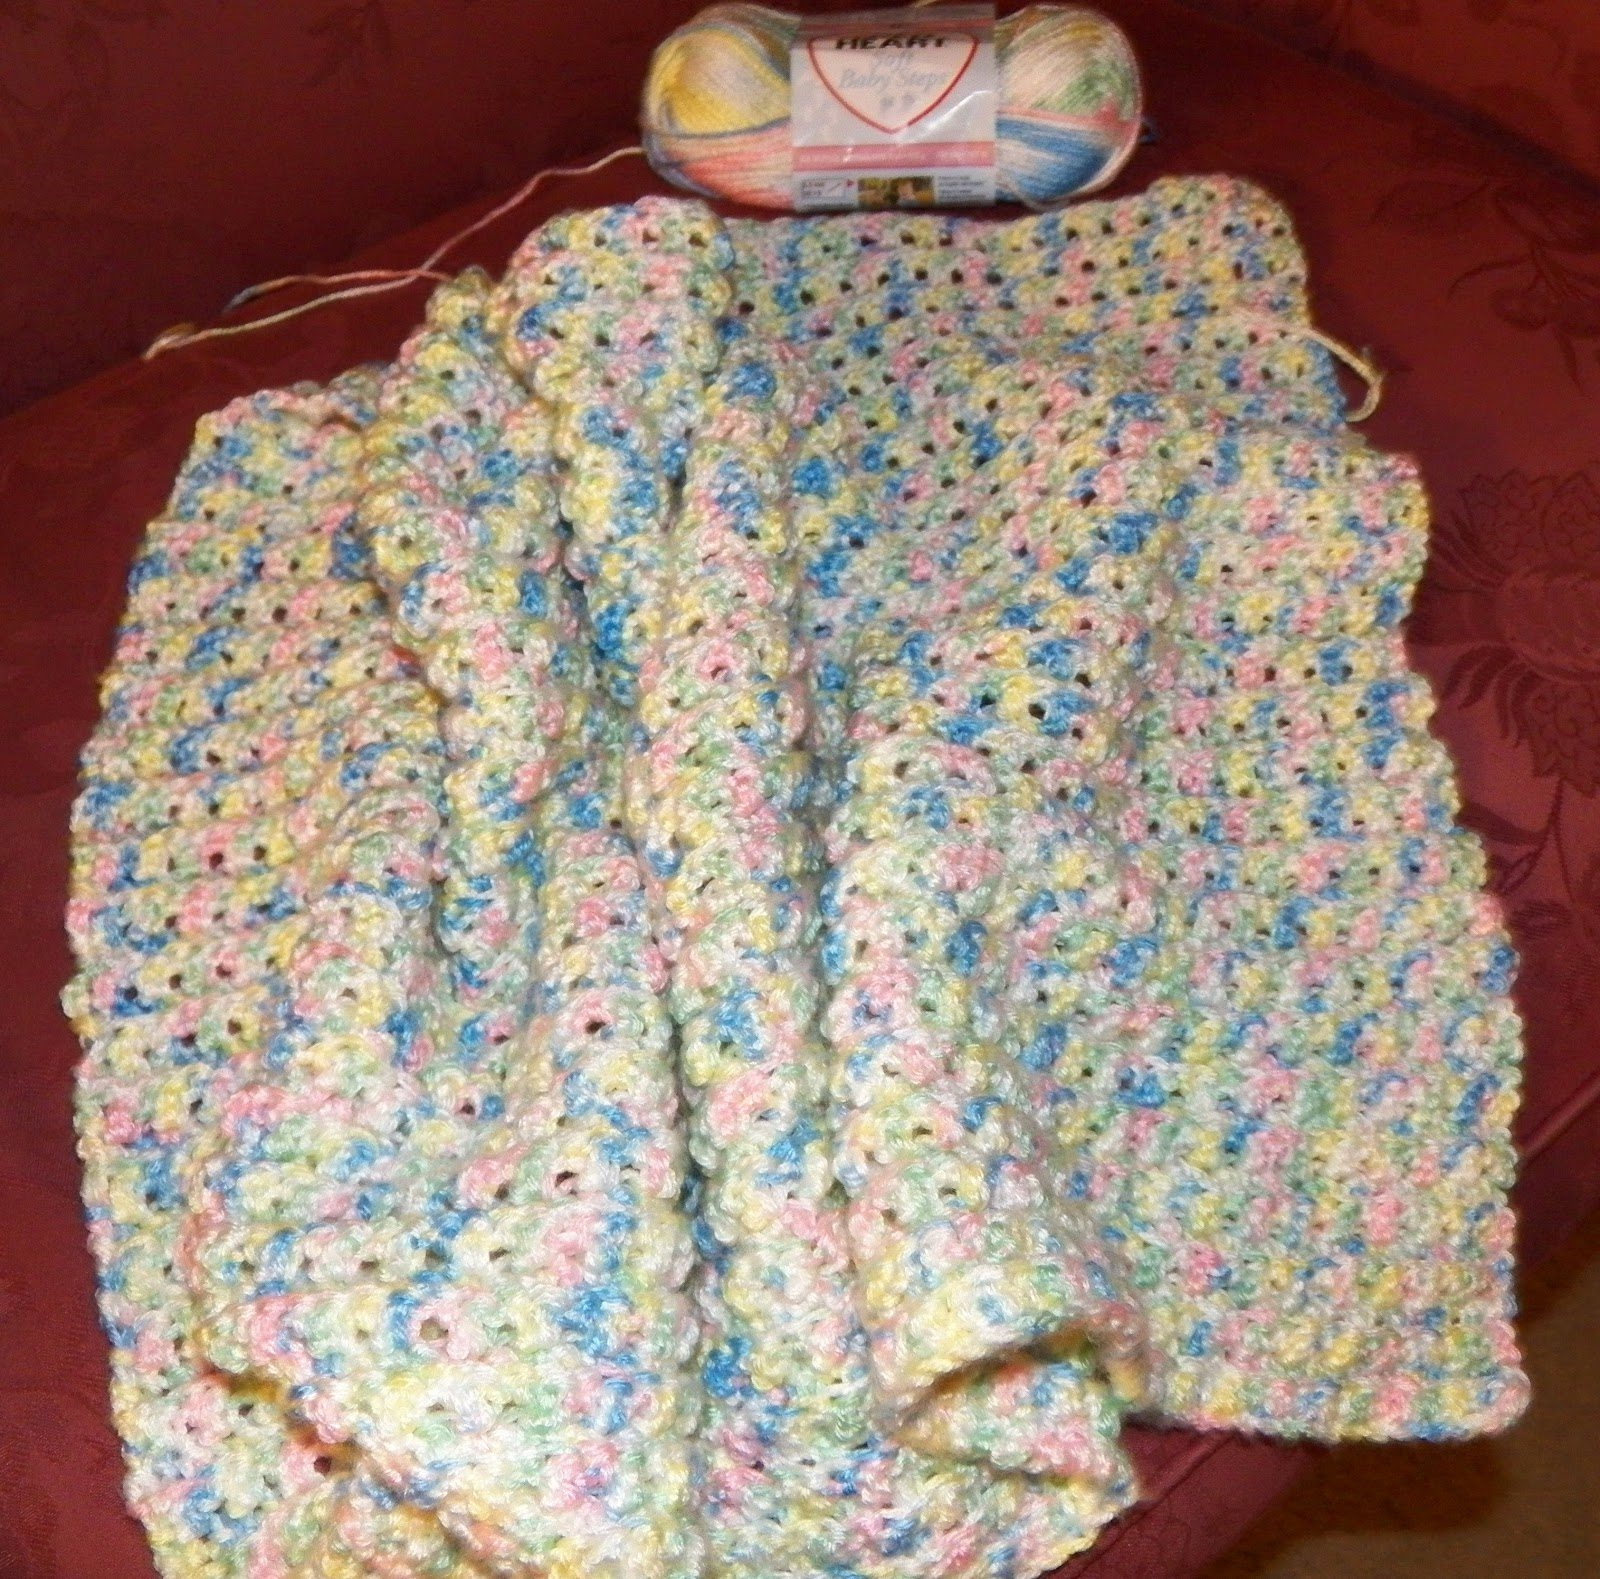 Crochet Baby Blanket Patterns Variegated Yarn : Crochet Attic: Baby Blanket in Progress...